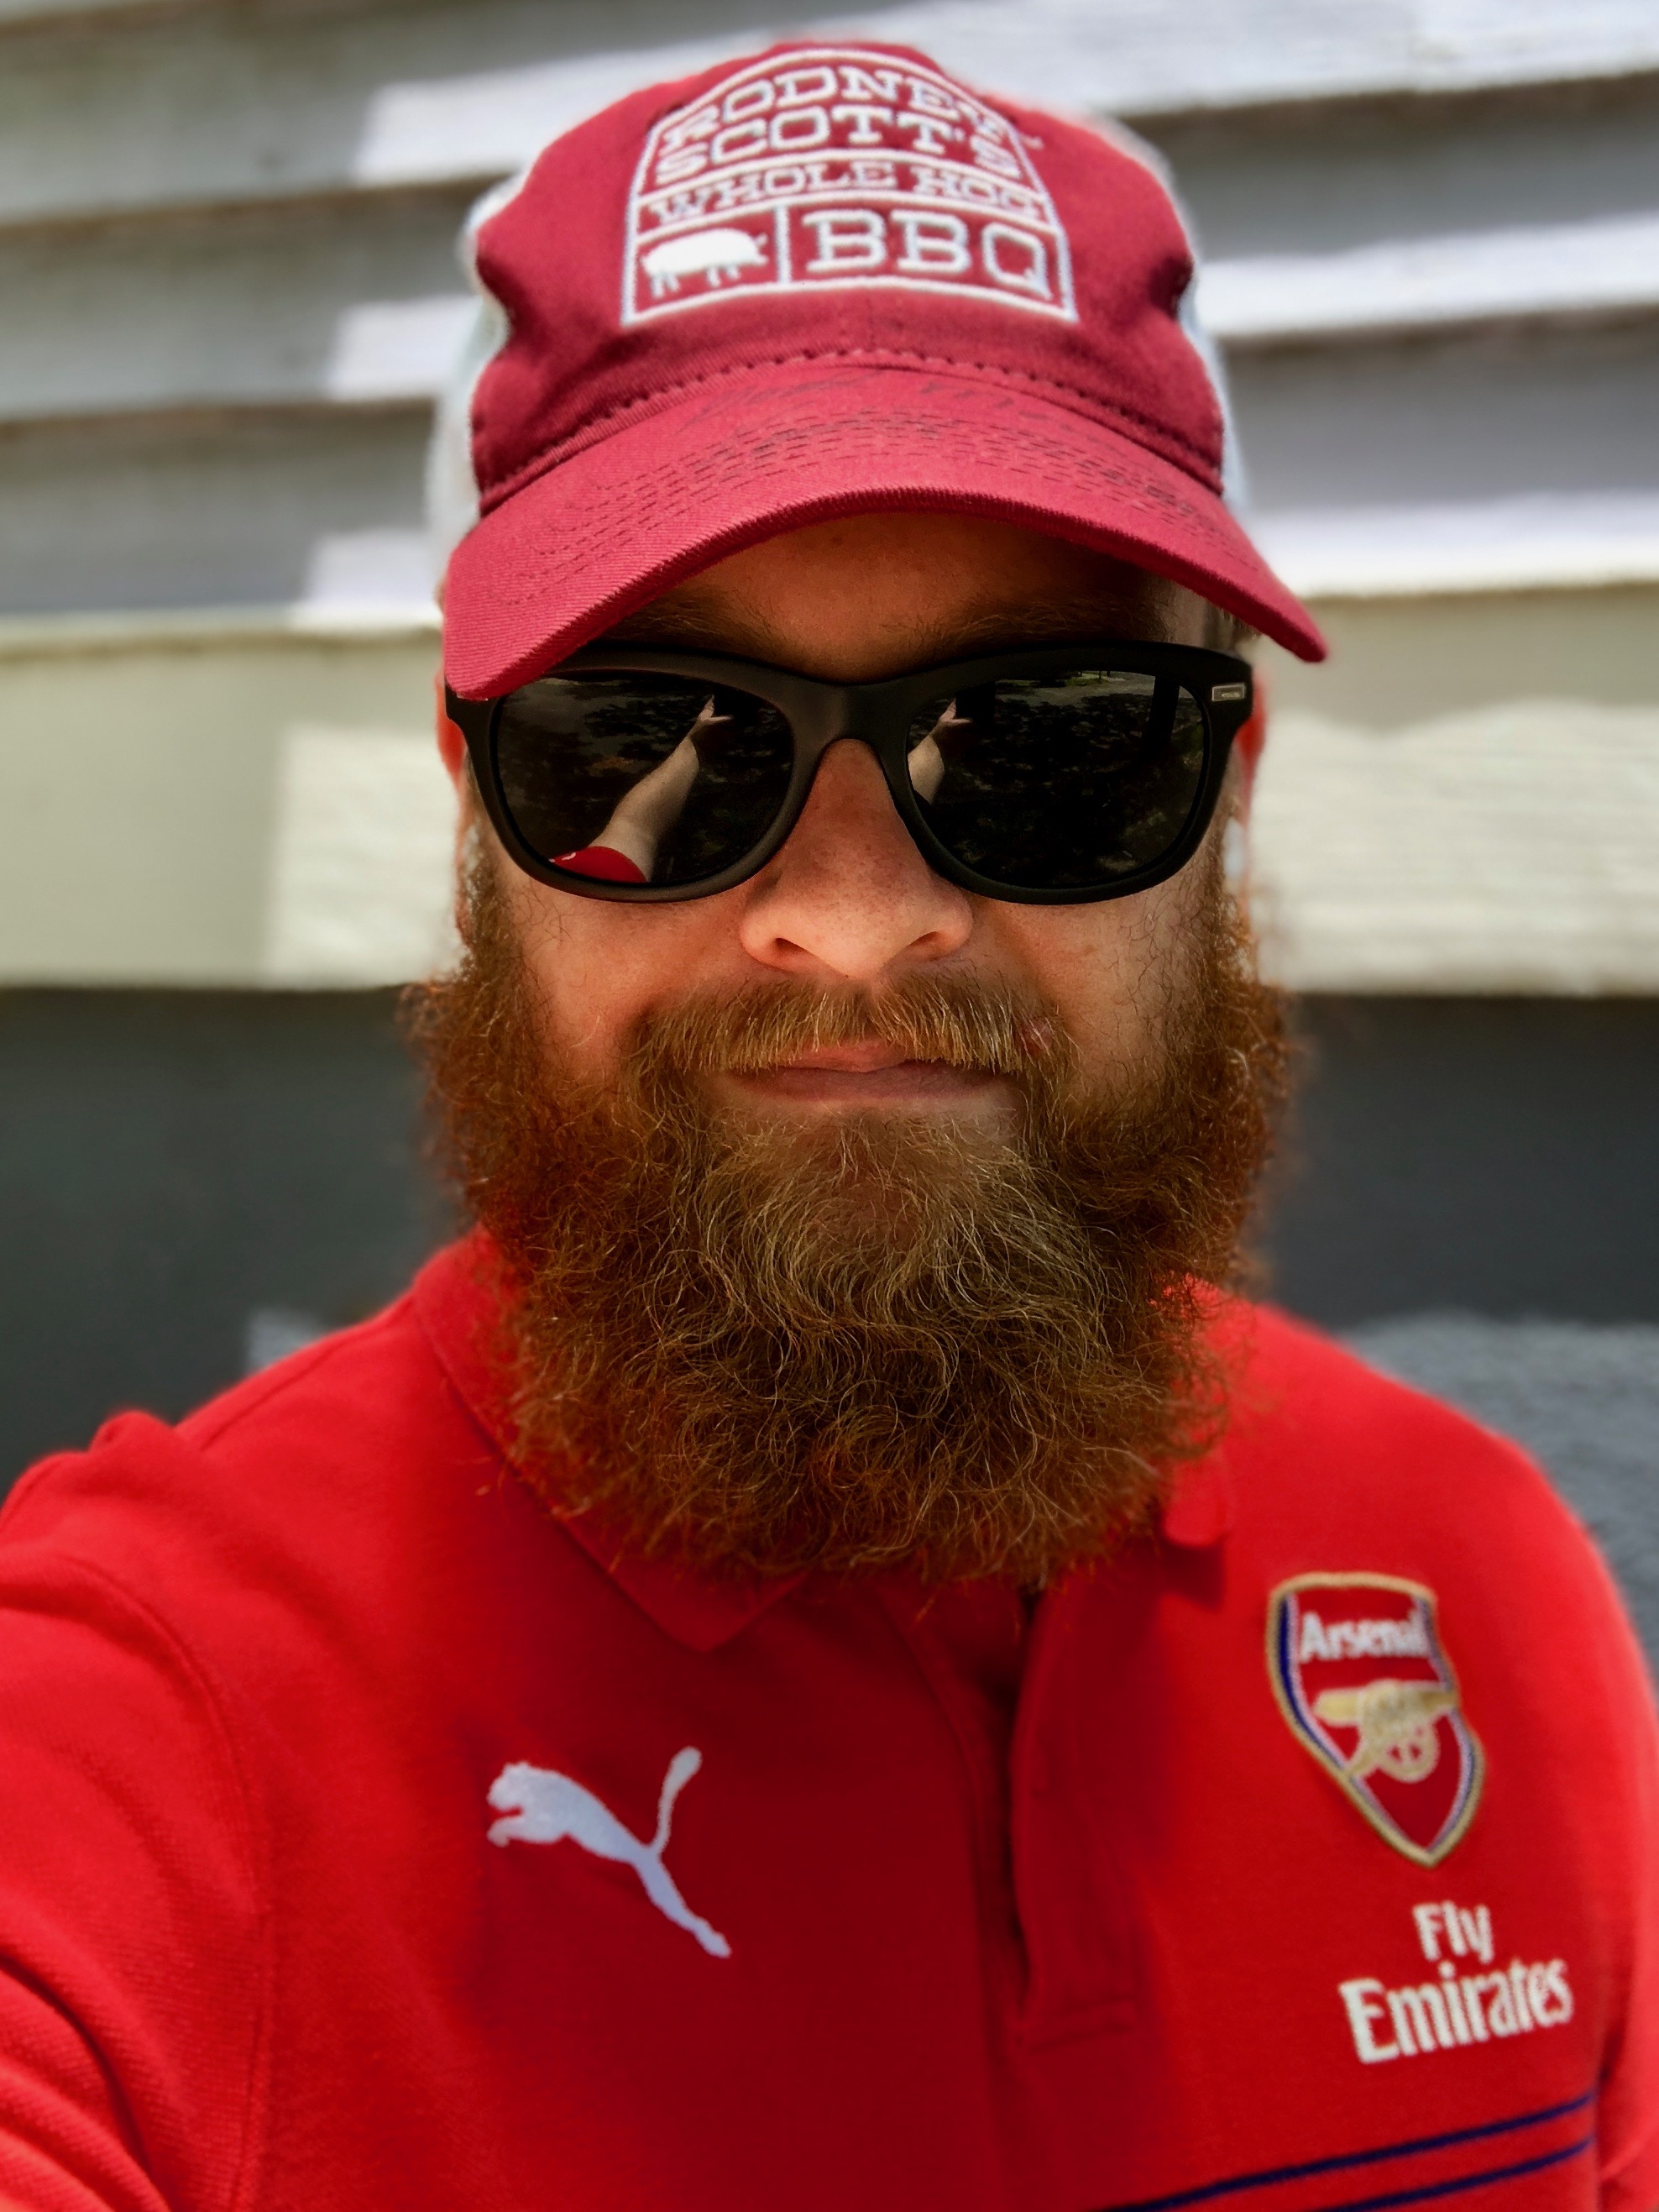 Stan Sulkowski - BRANCH WEB MASTER, PHOTOGRAPHER, GRAPHIC DESIGNFavorite Player: Dennis BergkampFavorite Moment: Aaron Ramsey's 109th minute goal in the 2014 FA Cup Final